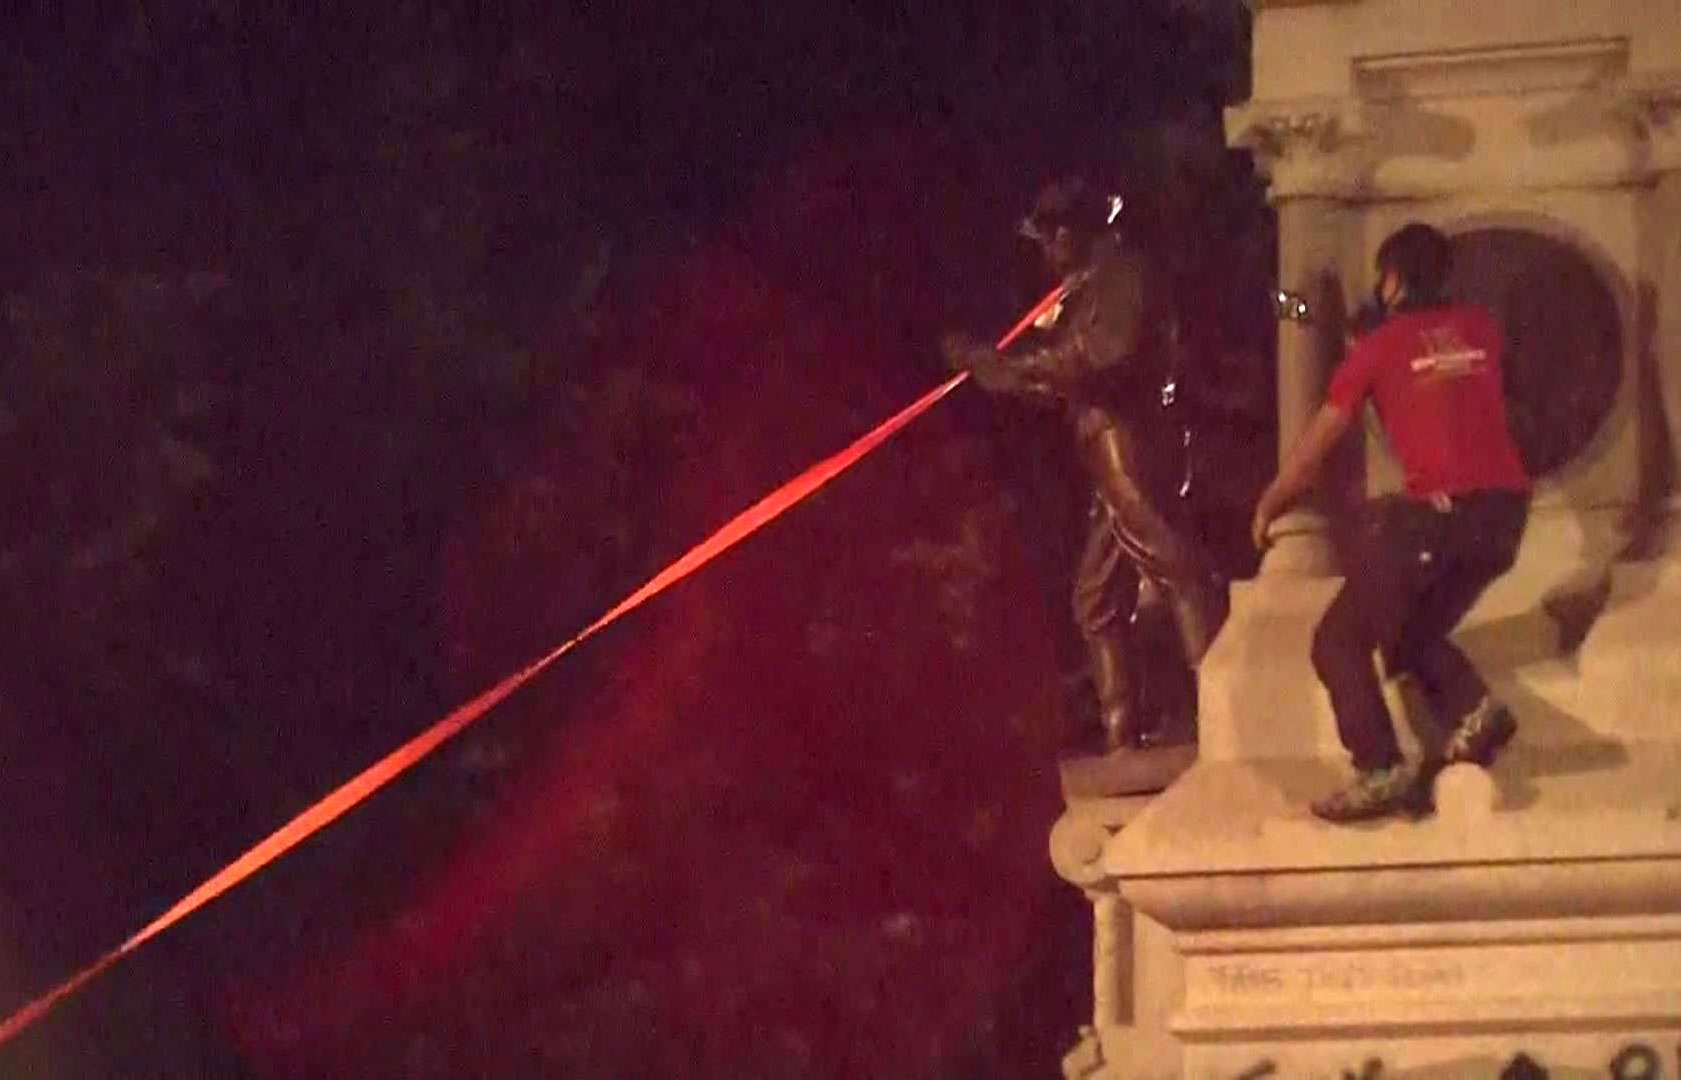 Protesters pull a statue down from a Confederate monument on Friday night in Raleigh, North Carolina.